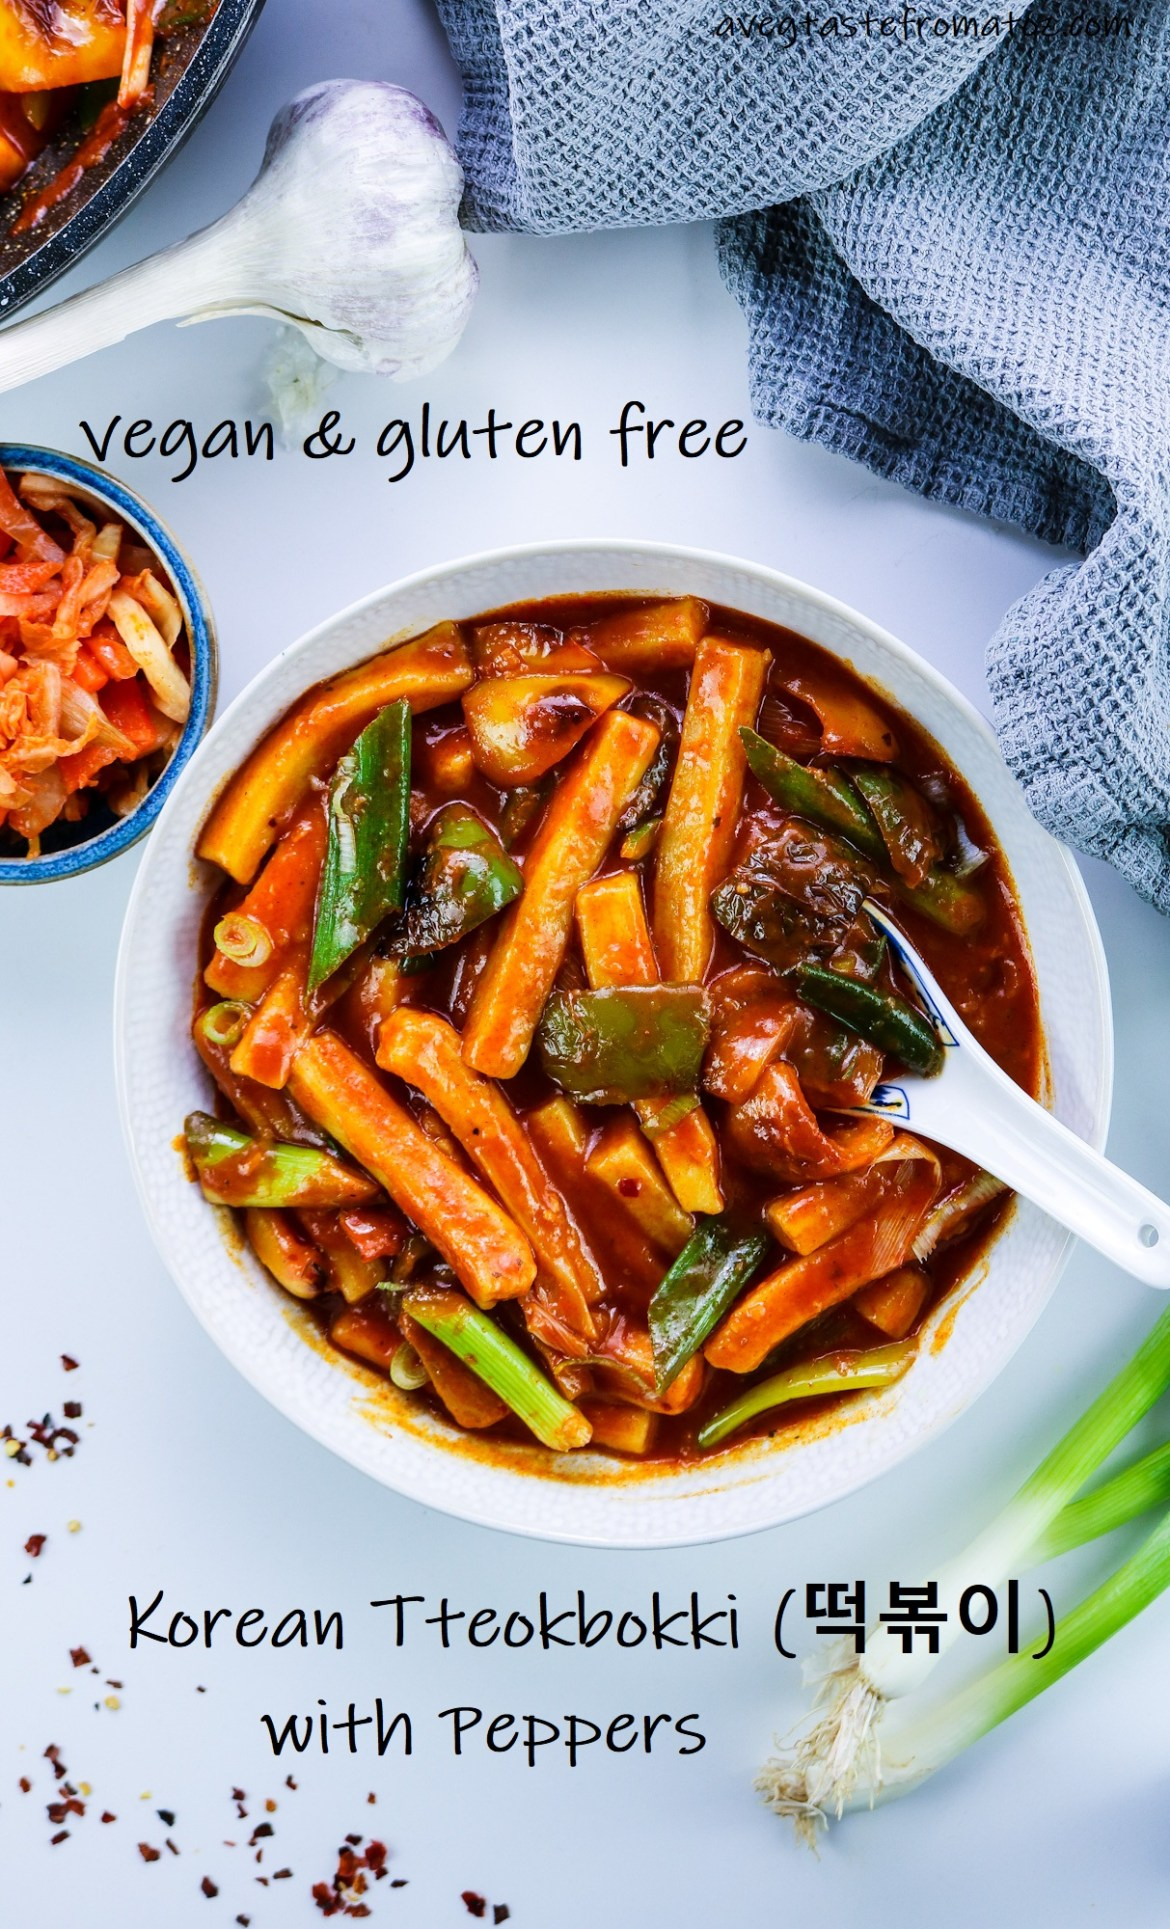 Korean Tteokbokki (떡볶이) with Peppers with text to be shared on Pinterest